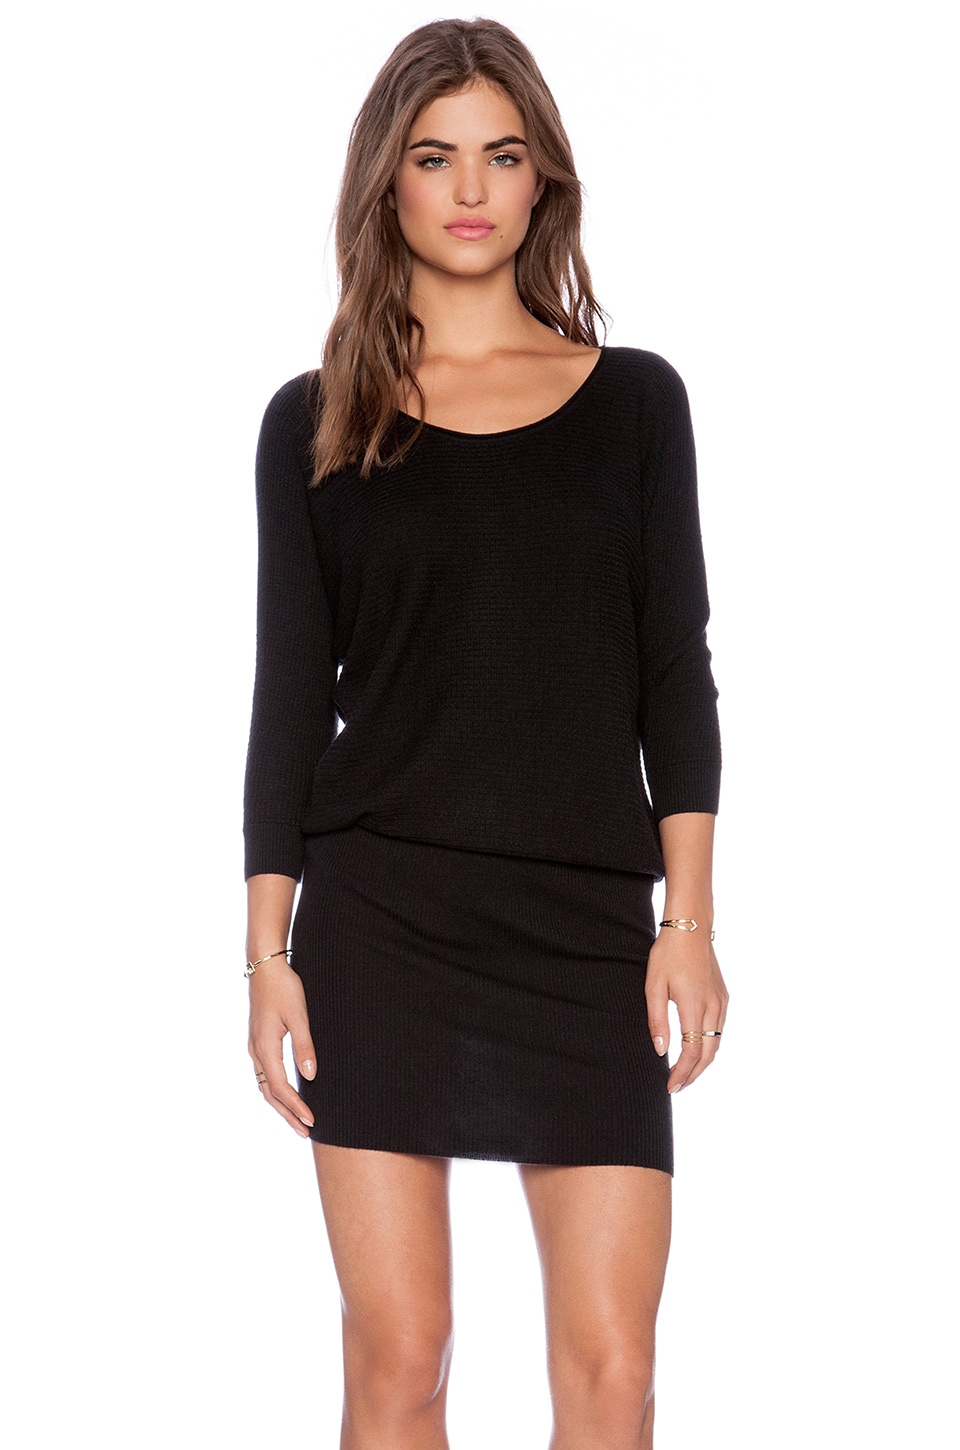 Soft Joie Caralynn Sweater Dress in Caviar